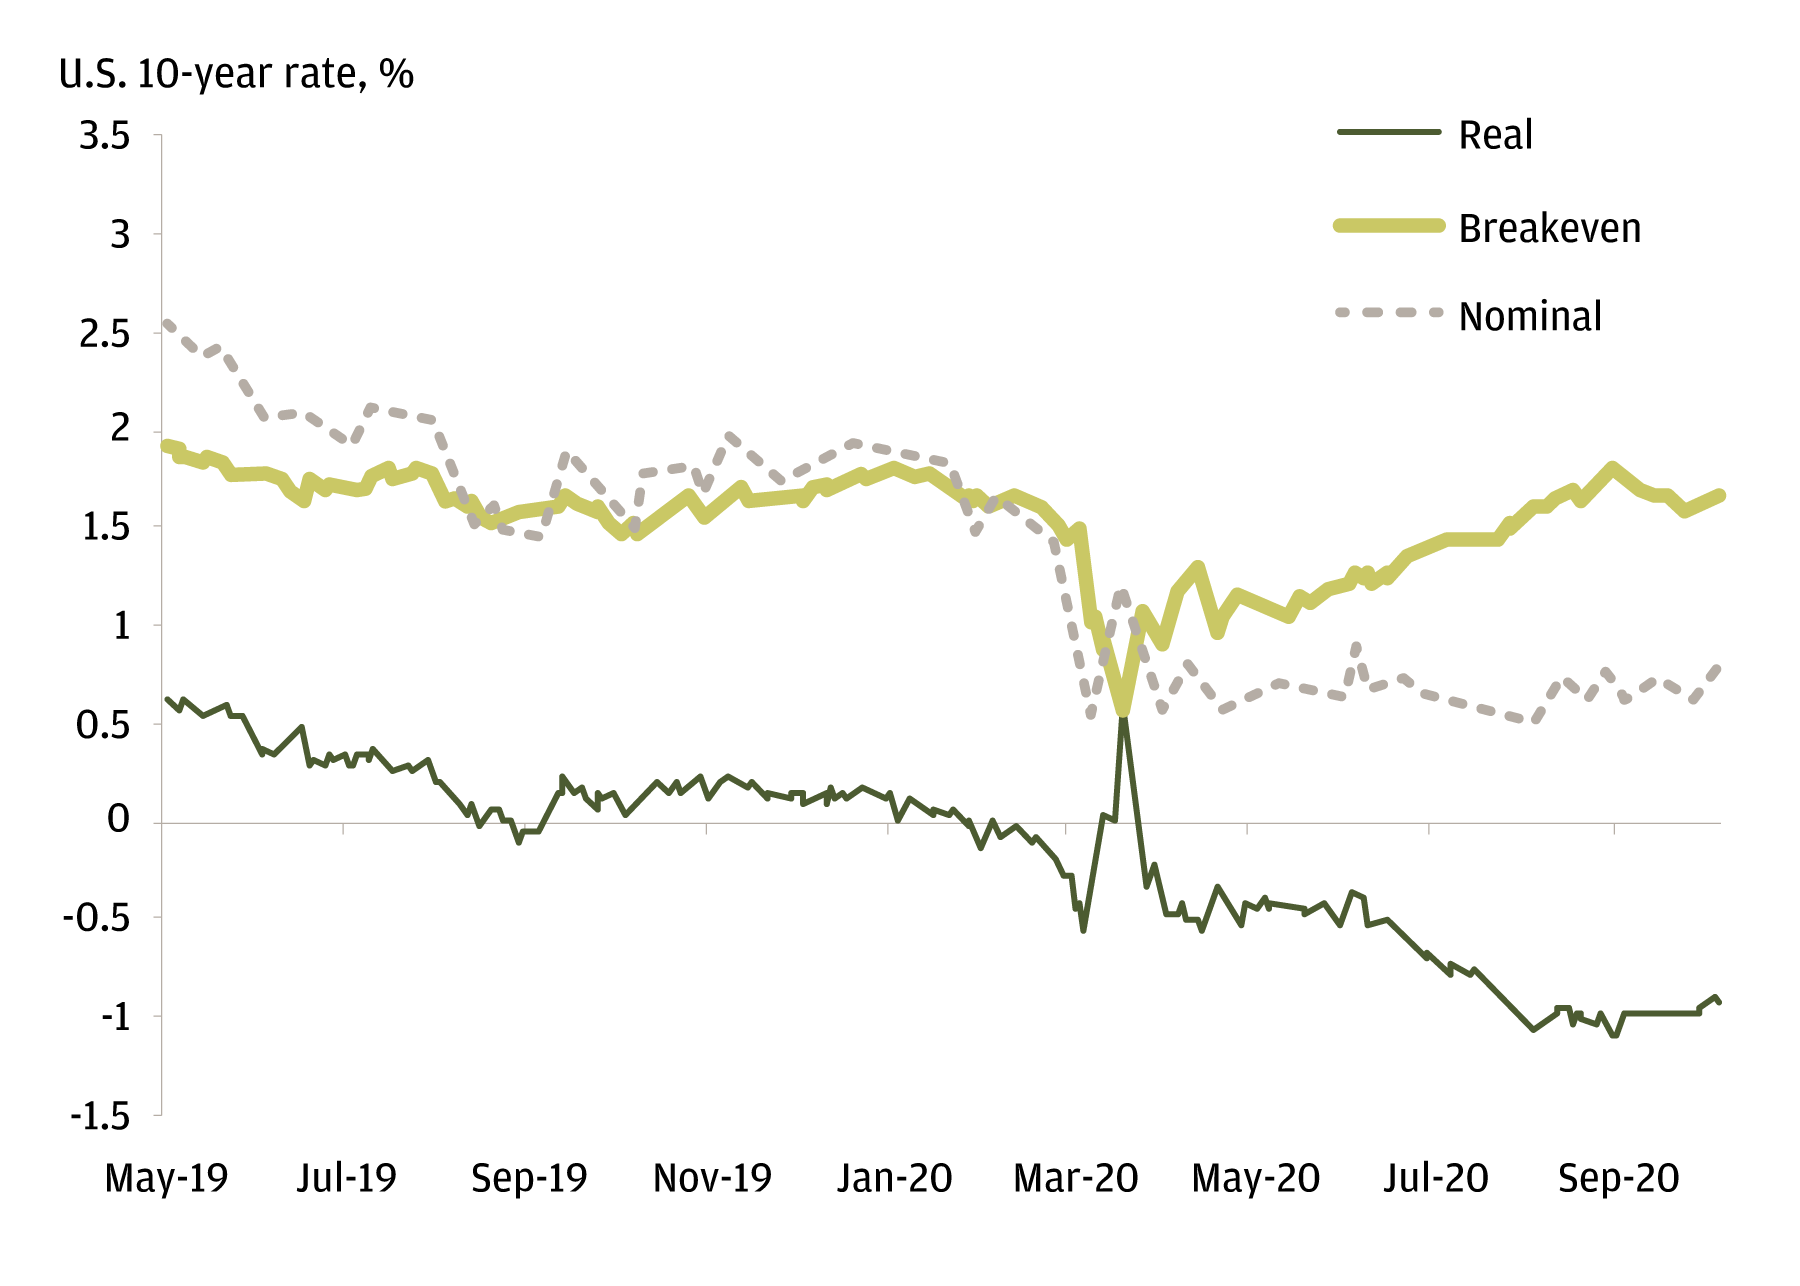 This chart shows a comparison between 10-year nominal, real, and inflation government bond yields from May 2019 to August 2020. The chart illustrates a spike in value during March 2020, followed by record lows for the real yield throughout the rest of the time period.